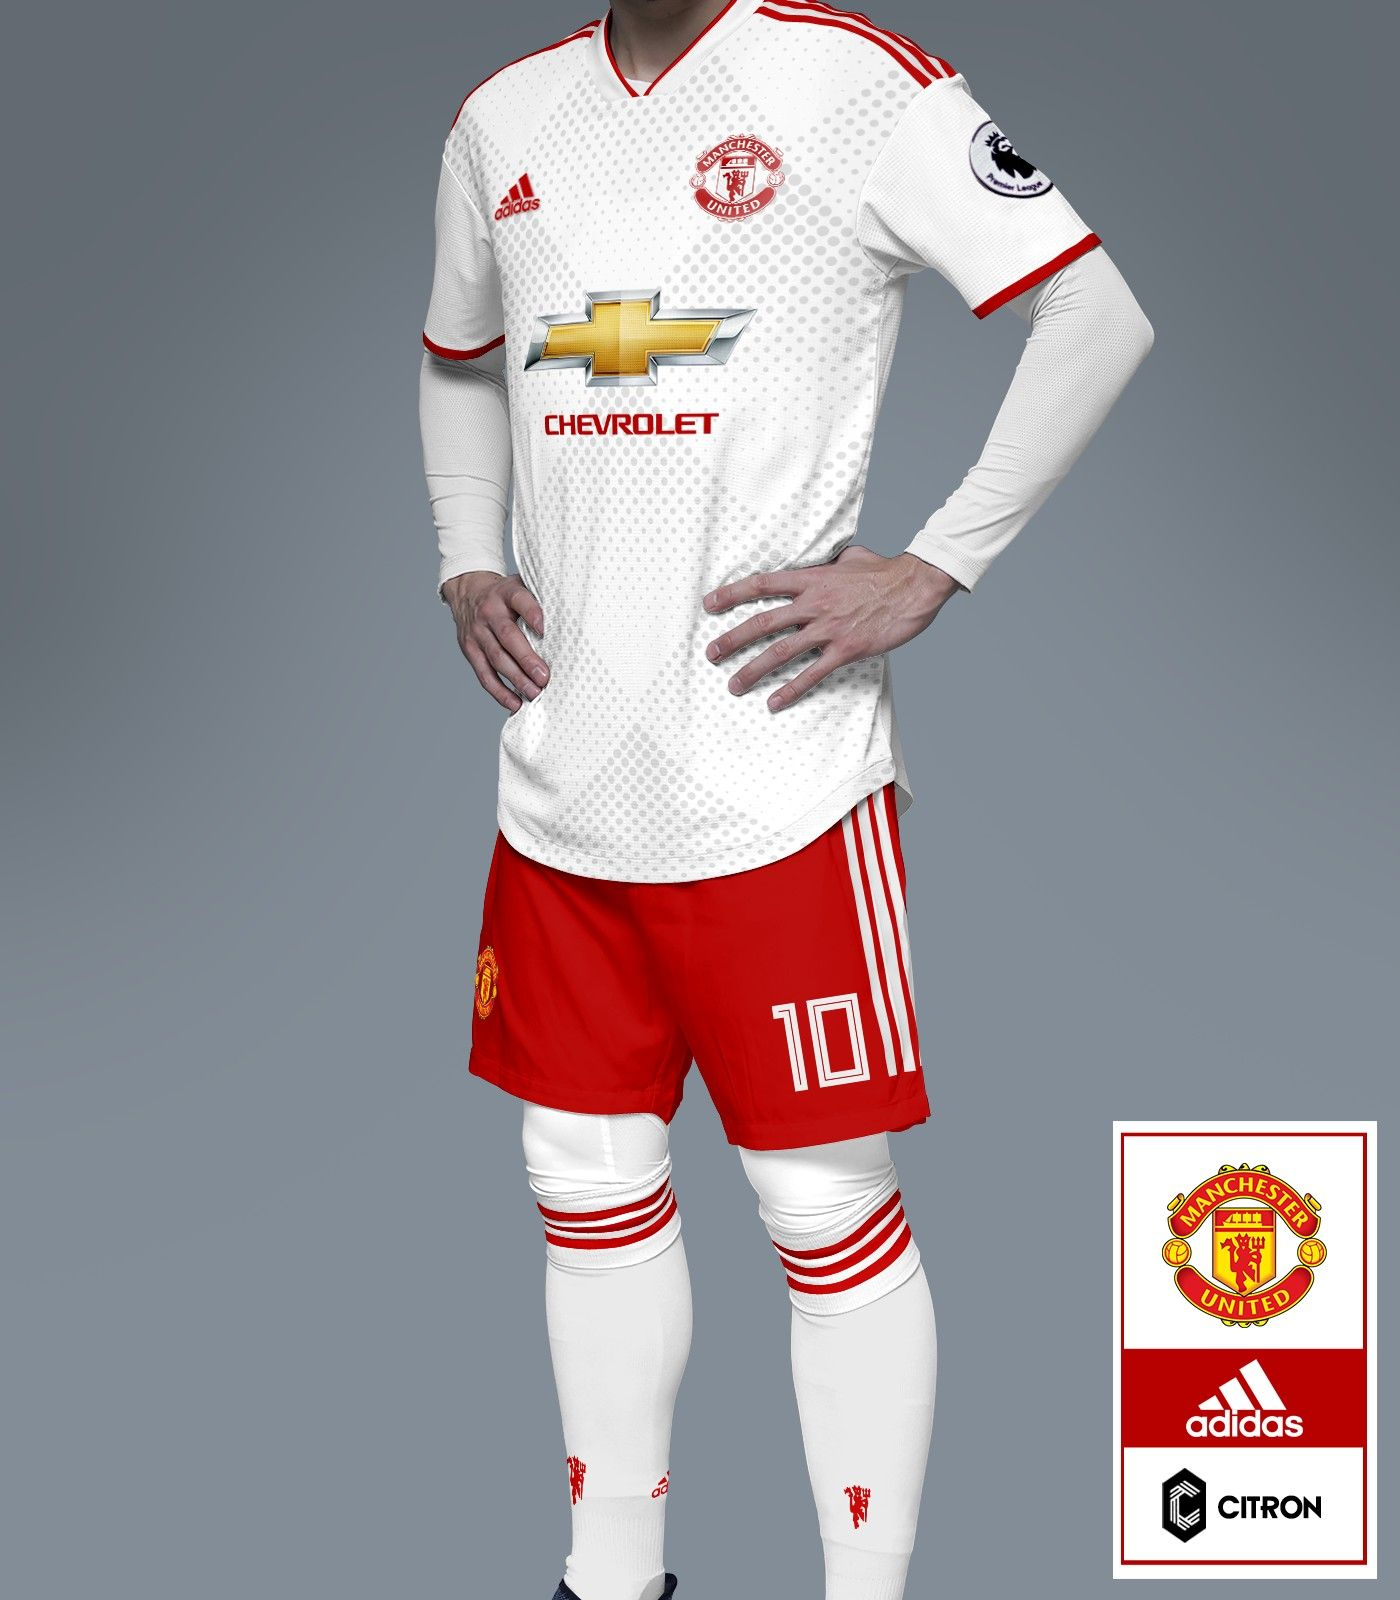 Manchester United Third Kit 2019 2020 Manchester United Third Kit 2019 2020 Camisas De Futebol Uniformes Futebol Camisas Personalizadas